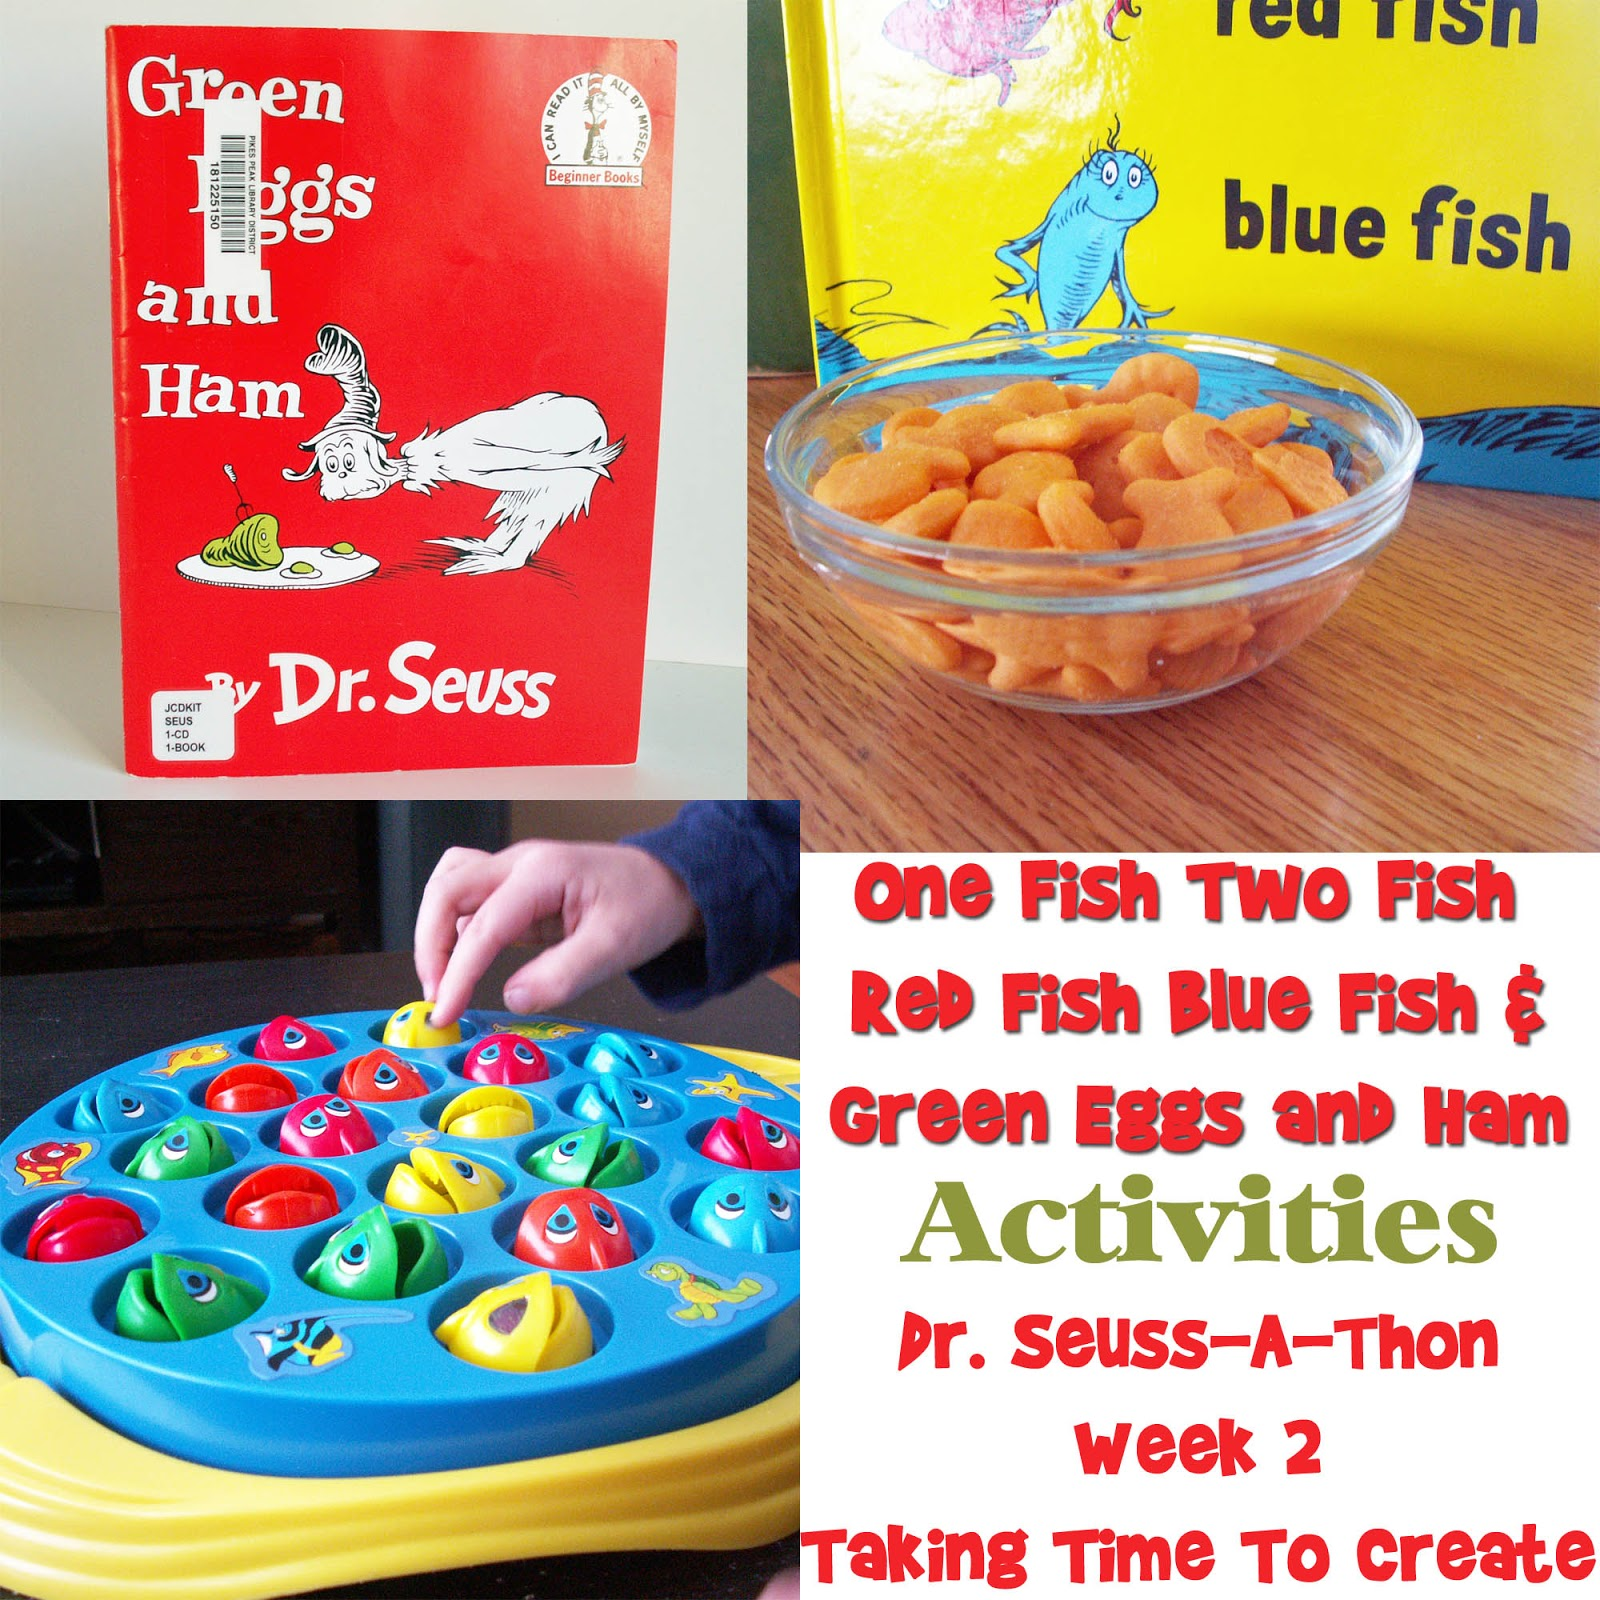 Taking Time To Create: Dr. Seuss-A-Thon Week 2 {\